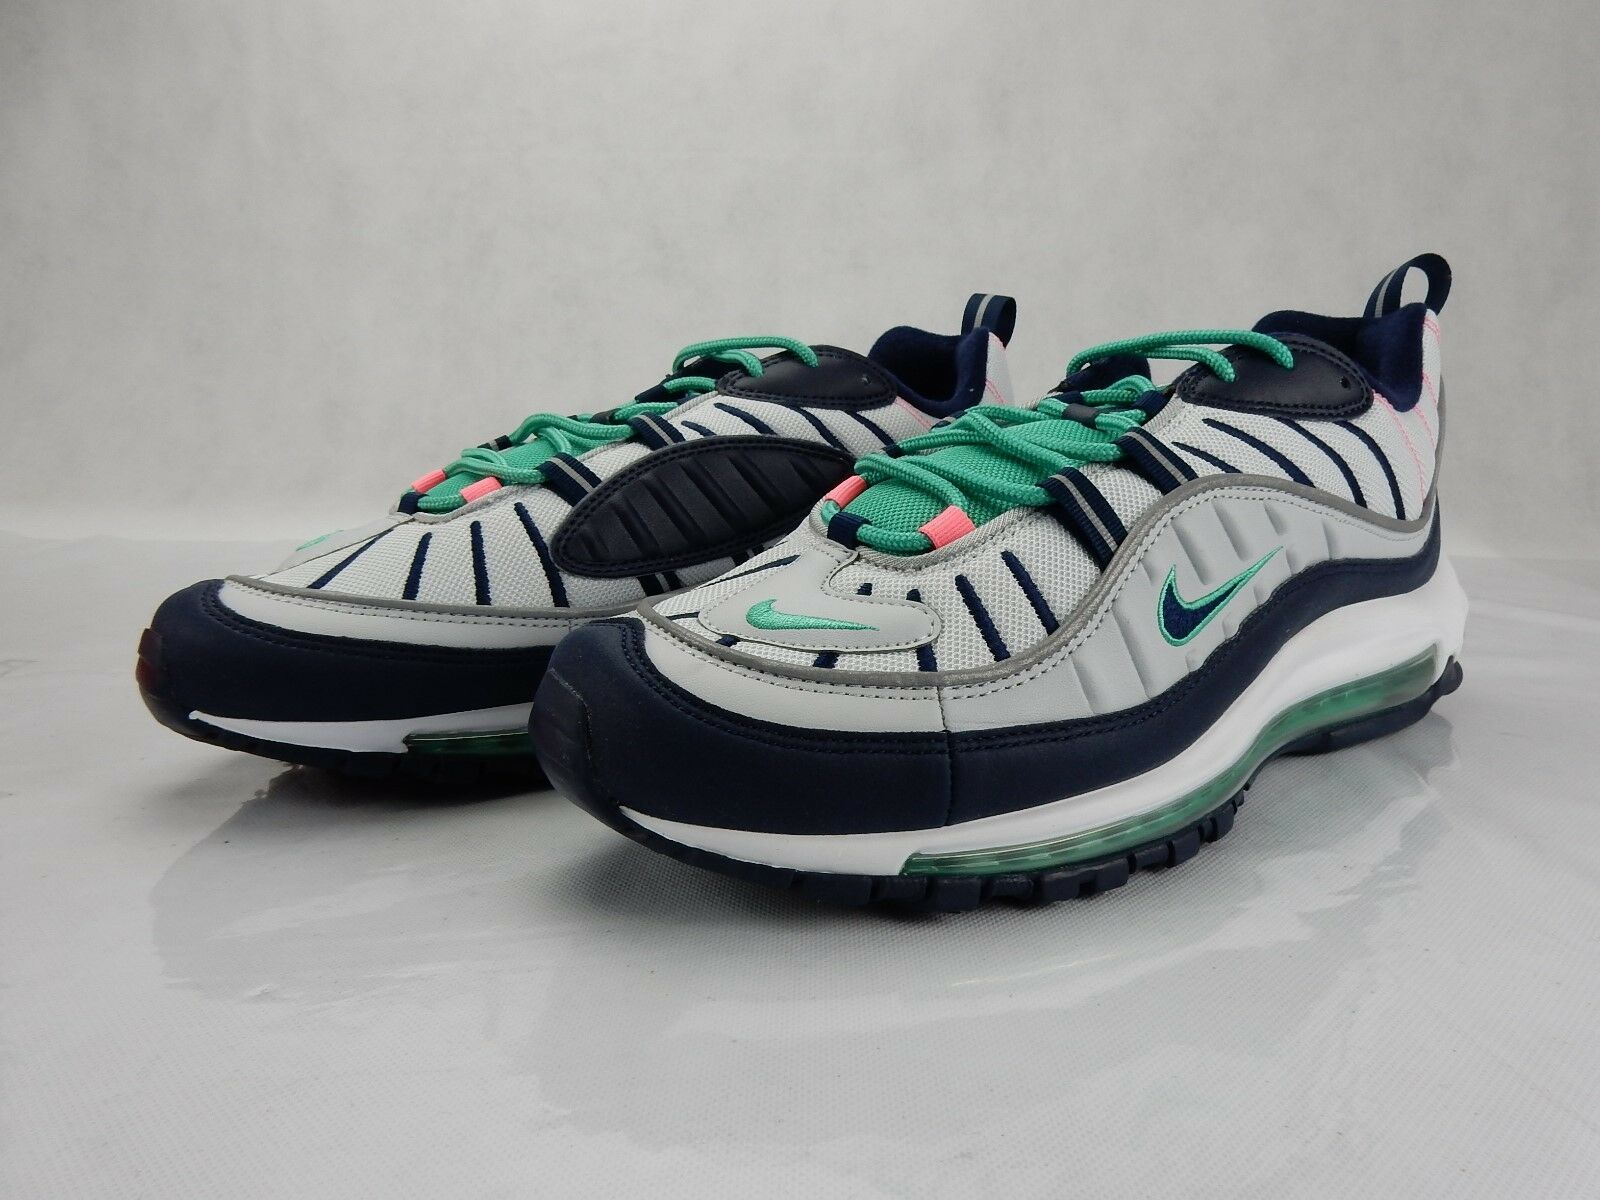 low priced 03853 e2d6f ... spain nike air south max 98 tidal wave south air beach 640744 005 navy s  hombre